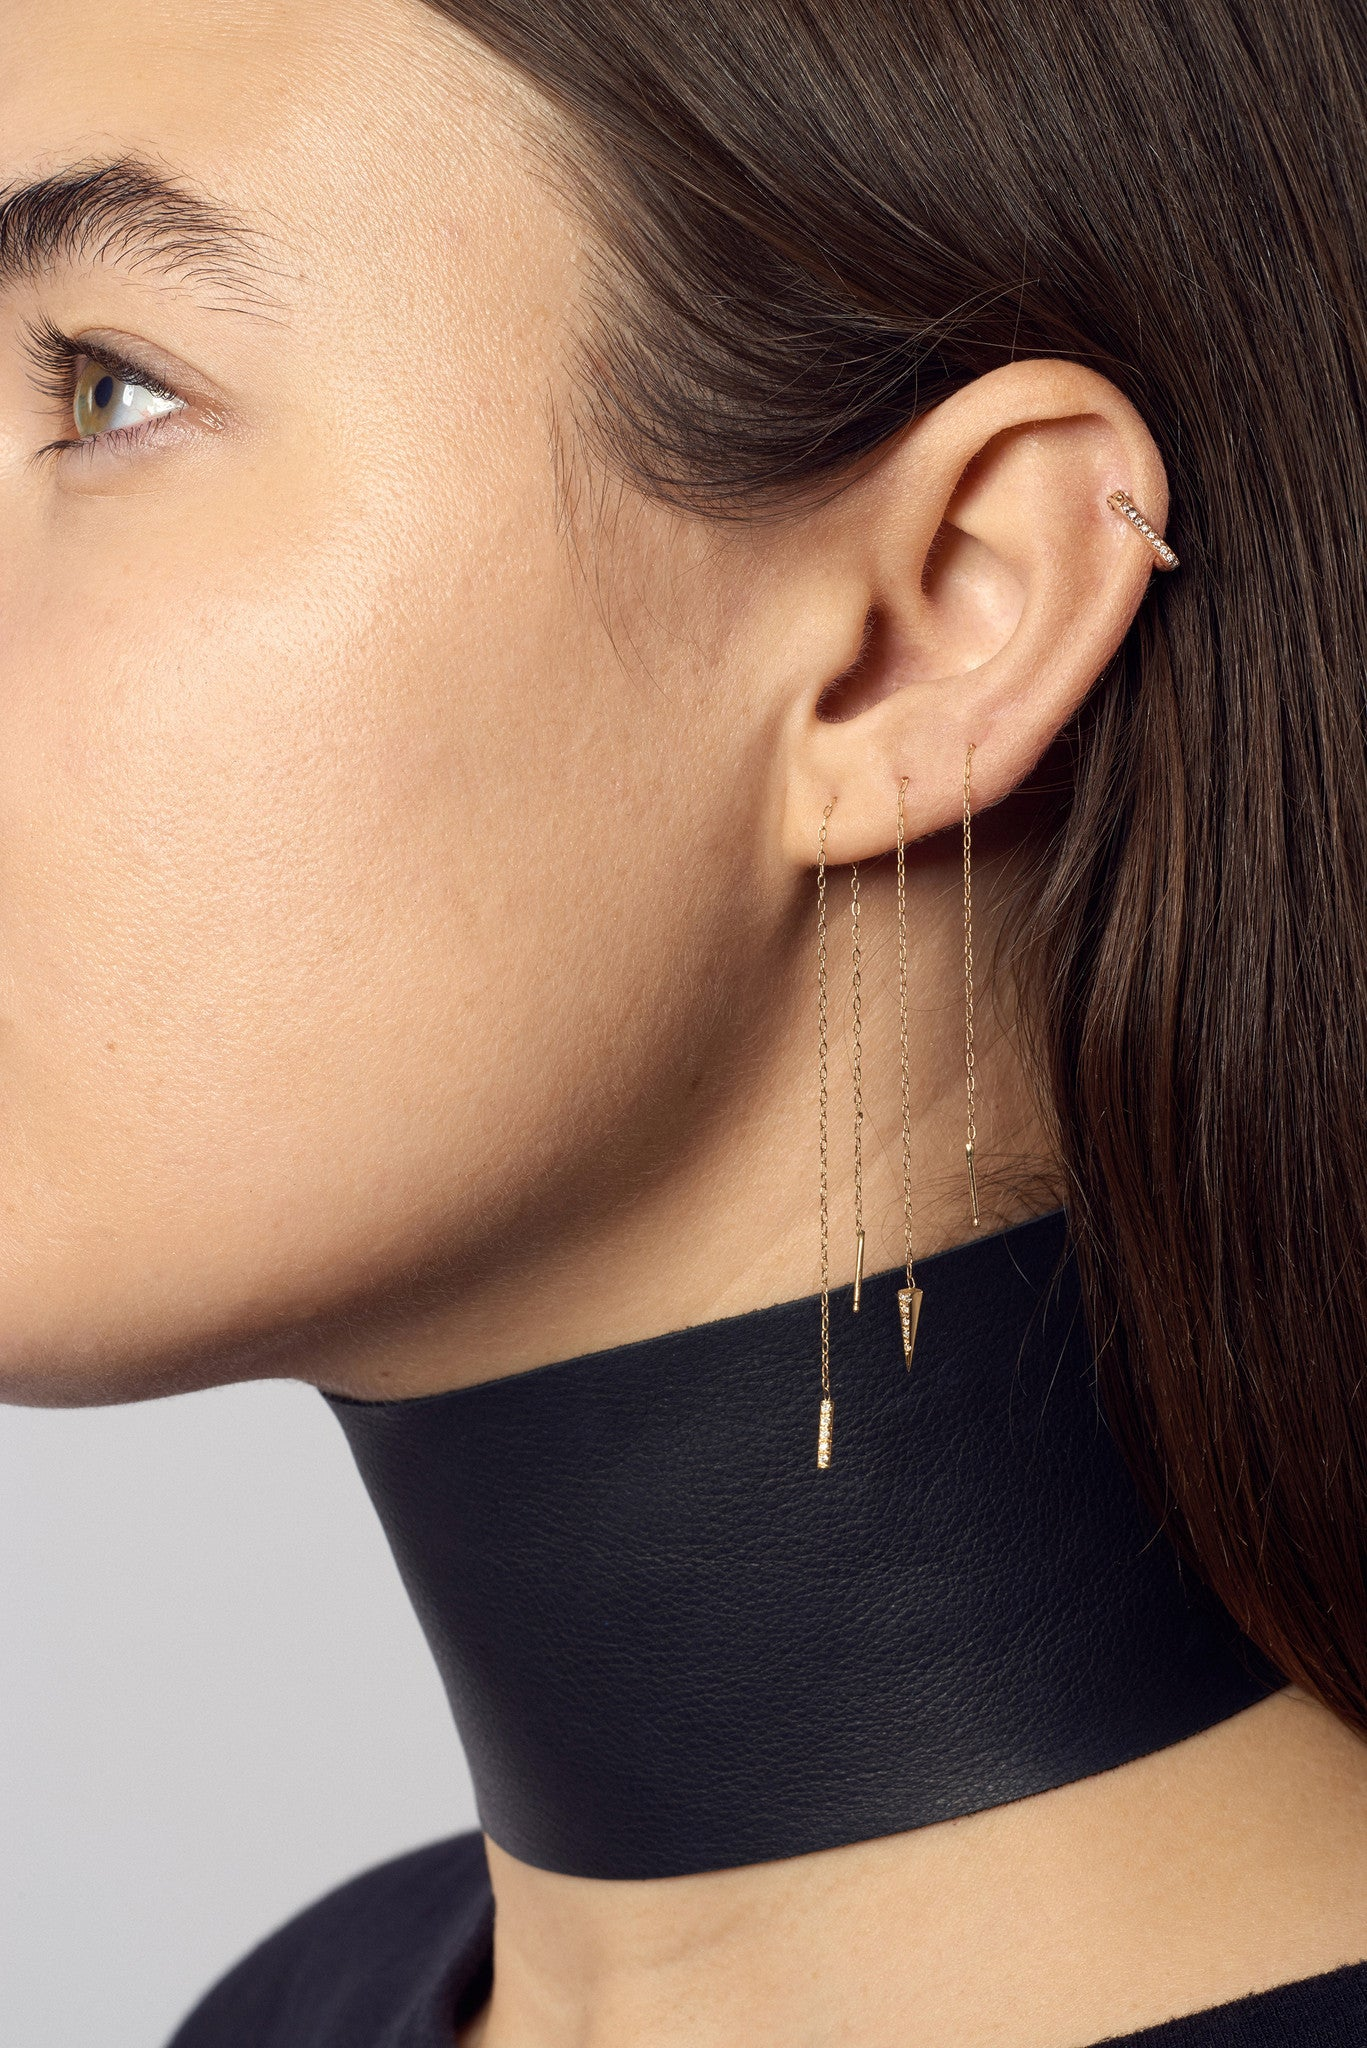 Micro Pave Diamonds Triangle Hoop Earrings Wendy Nichol fine jewelry designer 14k Gold Yellow Rose White Diamonds Black Diamonds V shape ear hugging simple delicate Hoops Handmade in NYC New York City First Second Ear Piercing Lower Lobe Upper Lobe Nose Single Individual Earring Diamond V Wrap